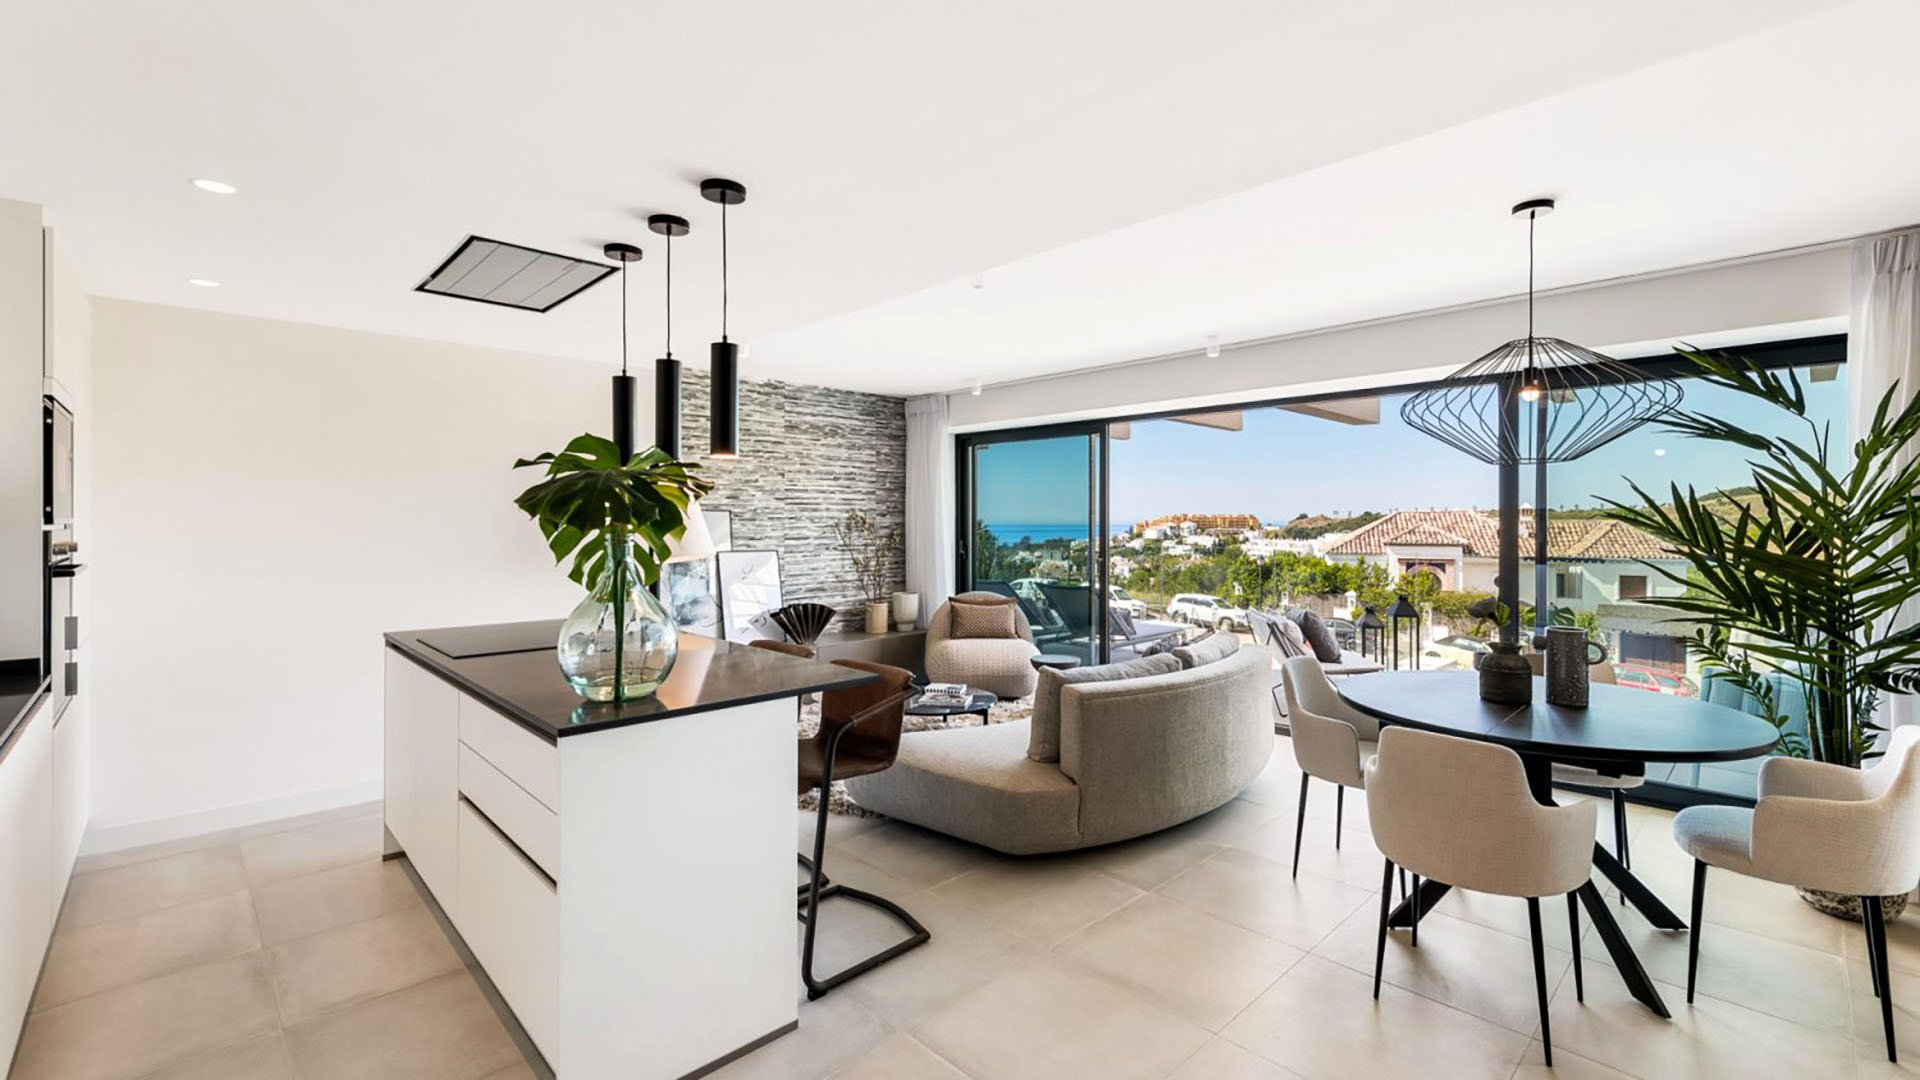 Oasis 325: Well priced apartments in Estepona